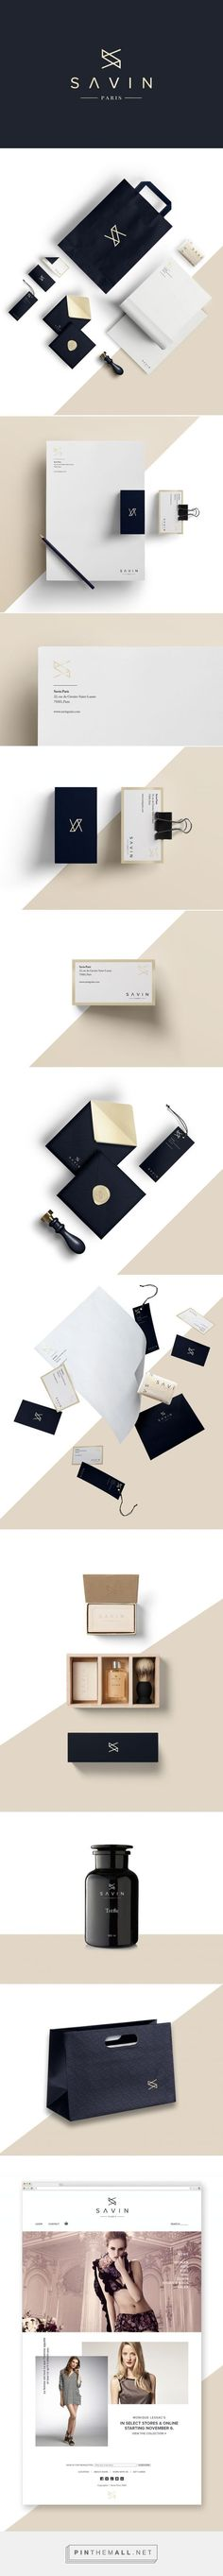 Savin Paris - fashion apparel on Behance - branding stationary corporate identity visual design label business card letterhead bag packaging website enveloppe logo minimalistic graphic design::